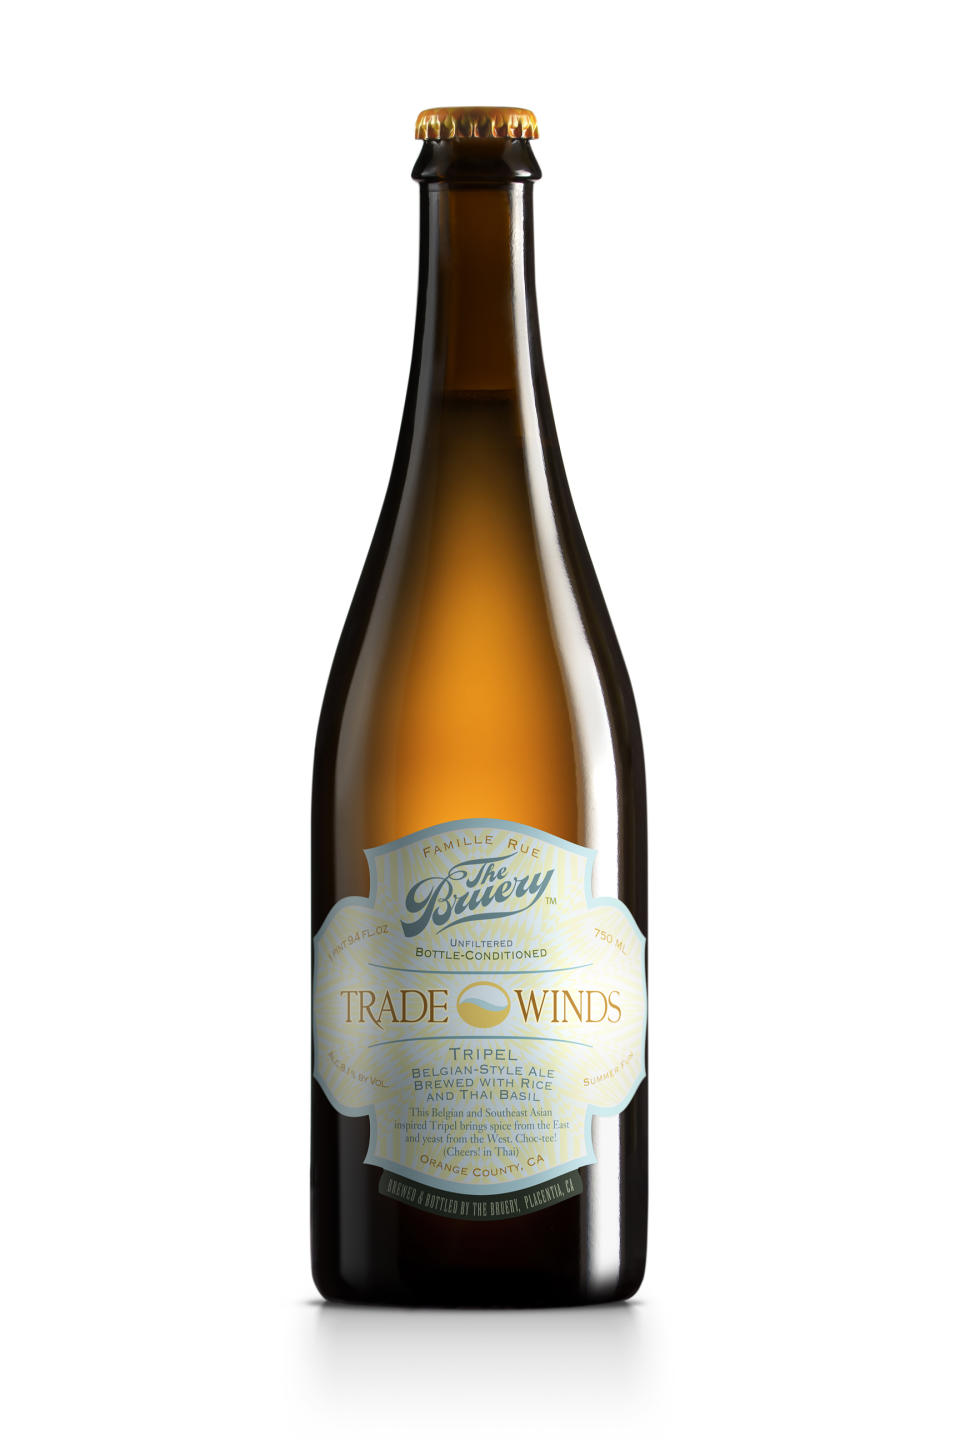 This undated publicity photo provided by The Bruery shows a bottle of Trade Winds Tripel/Belgian-style Golden Ale. (AP Photo/The Bruery)